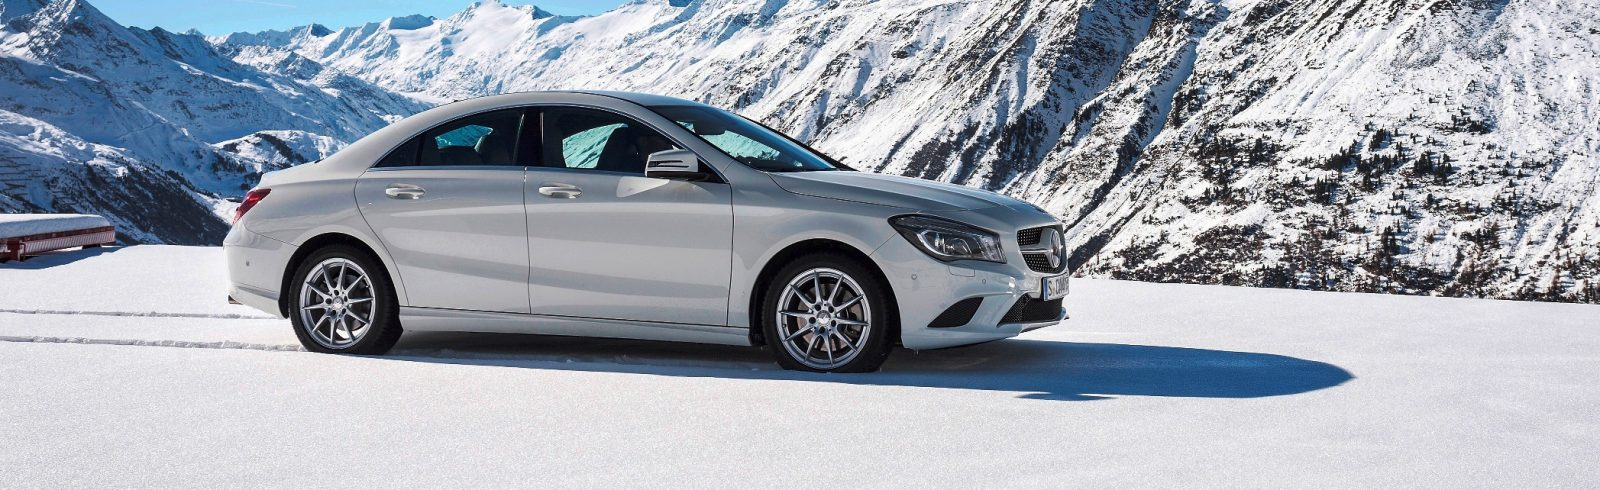 Race start video 2014 cla45 amg shows impressive launch for 2013 mercedes benz cla250 4matic